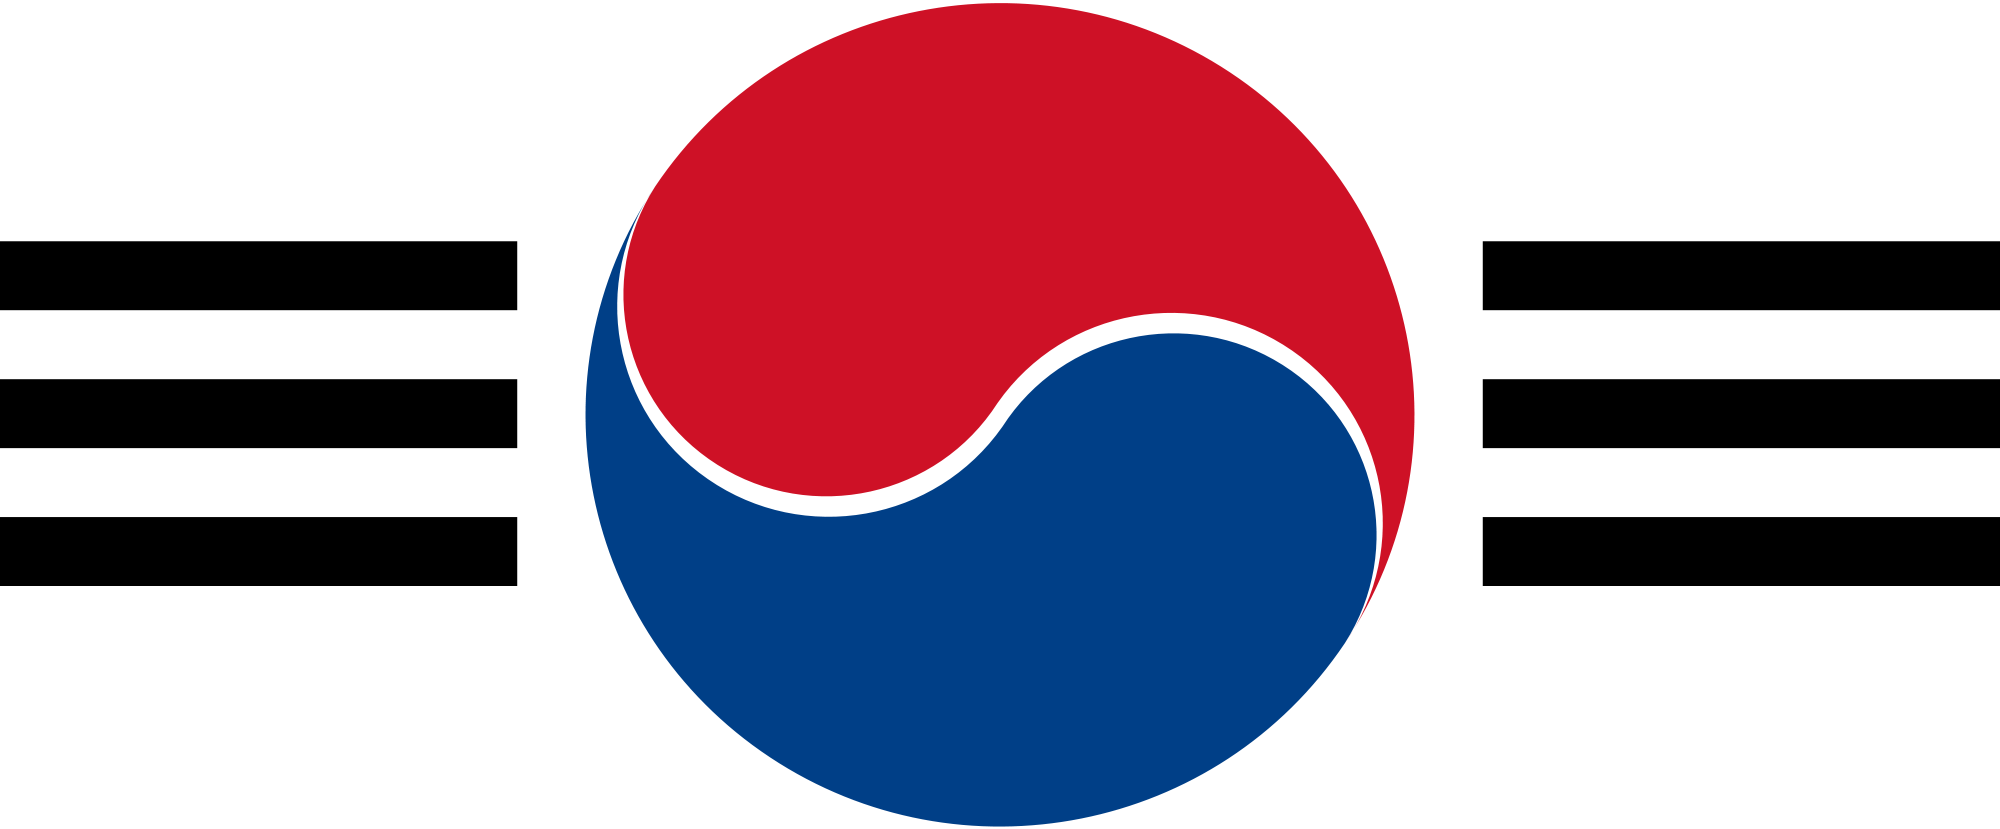 File:Roundel of the Republic of Korea Air Force.svg.